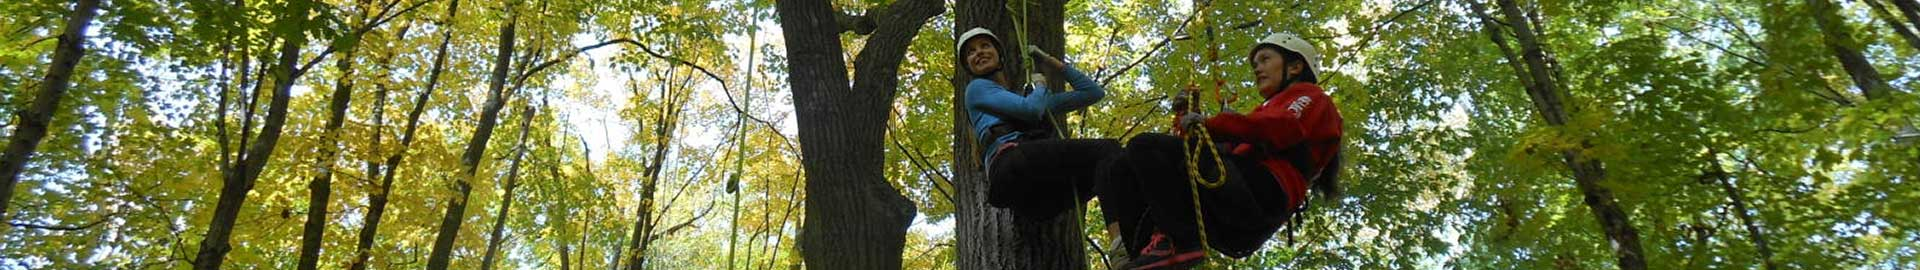 climb-trees-home-mobile-banner-experiences-2